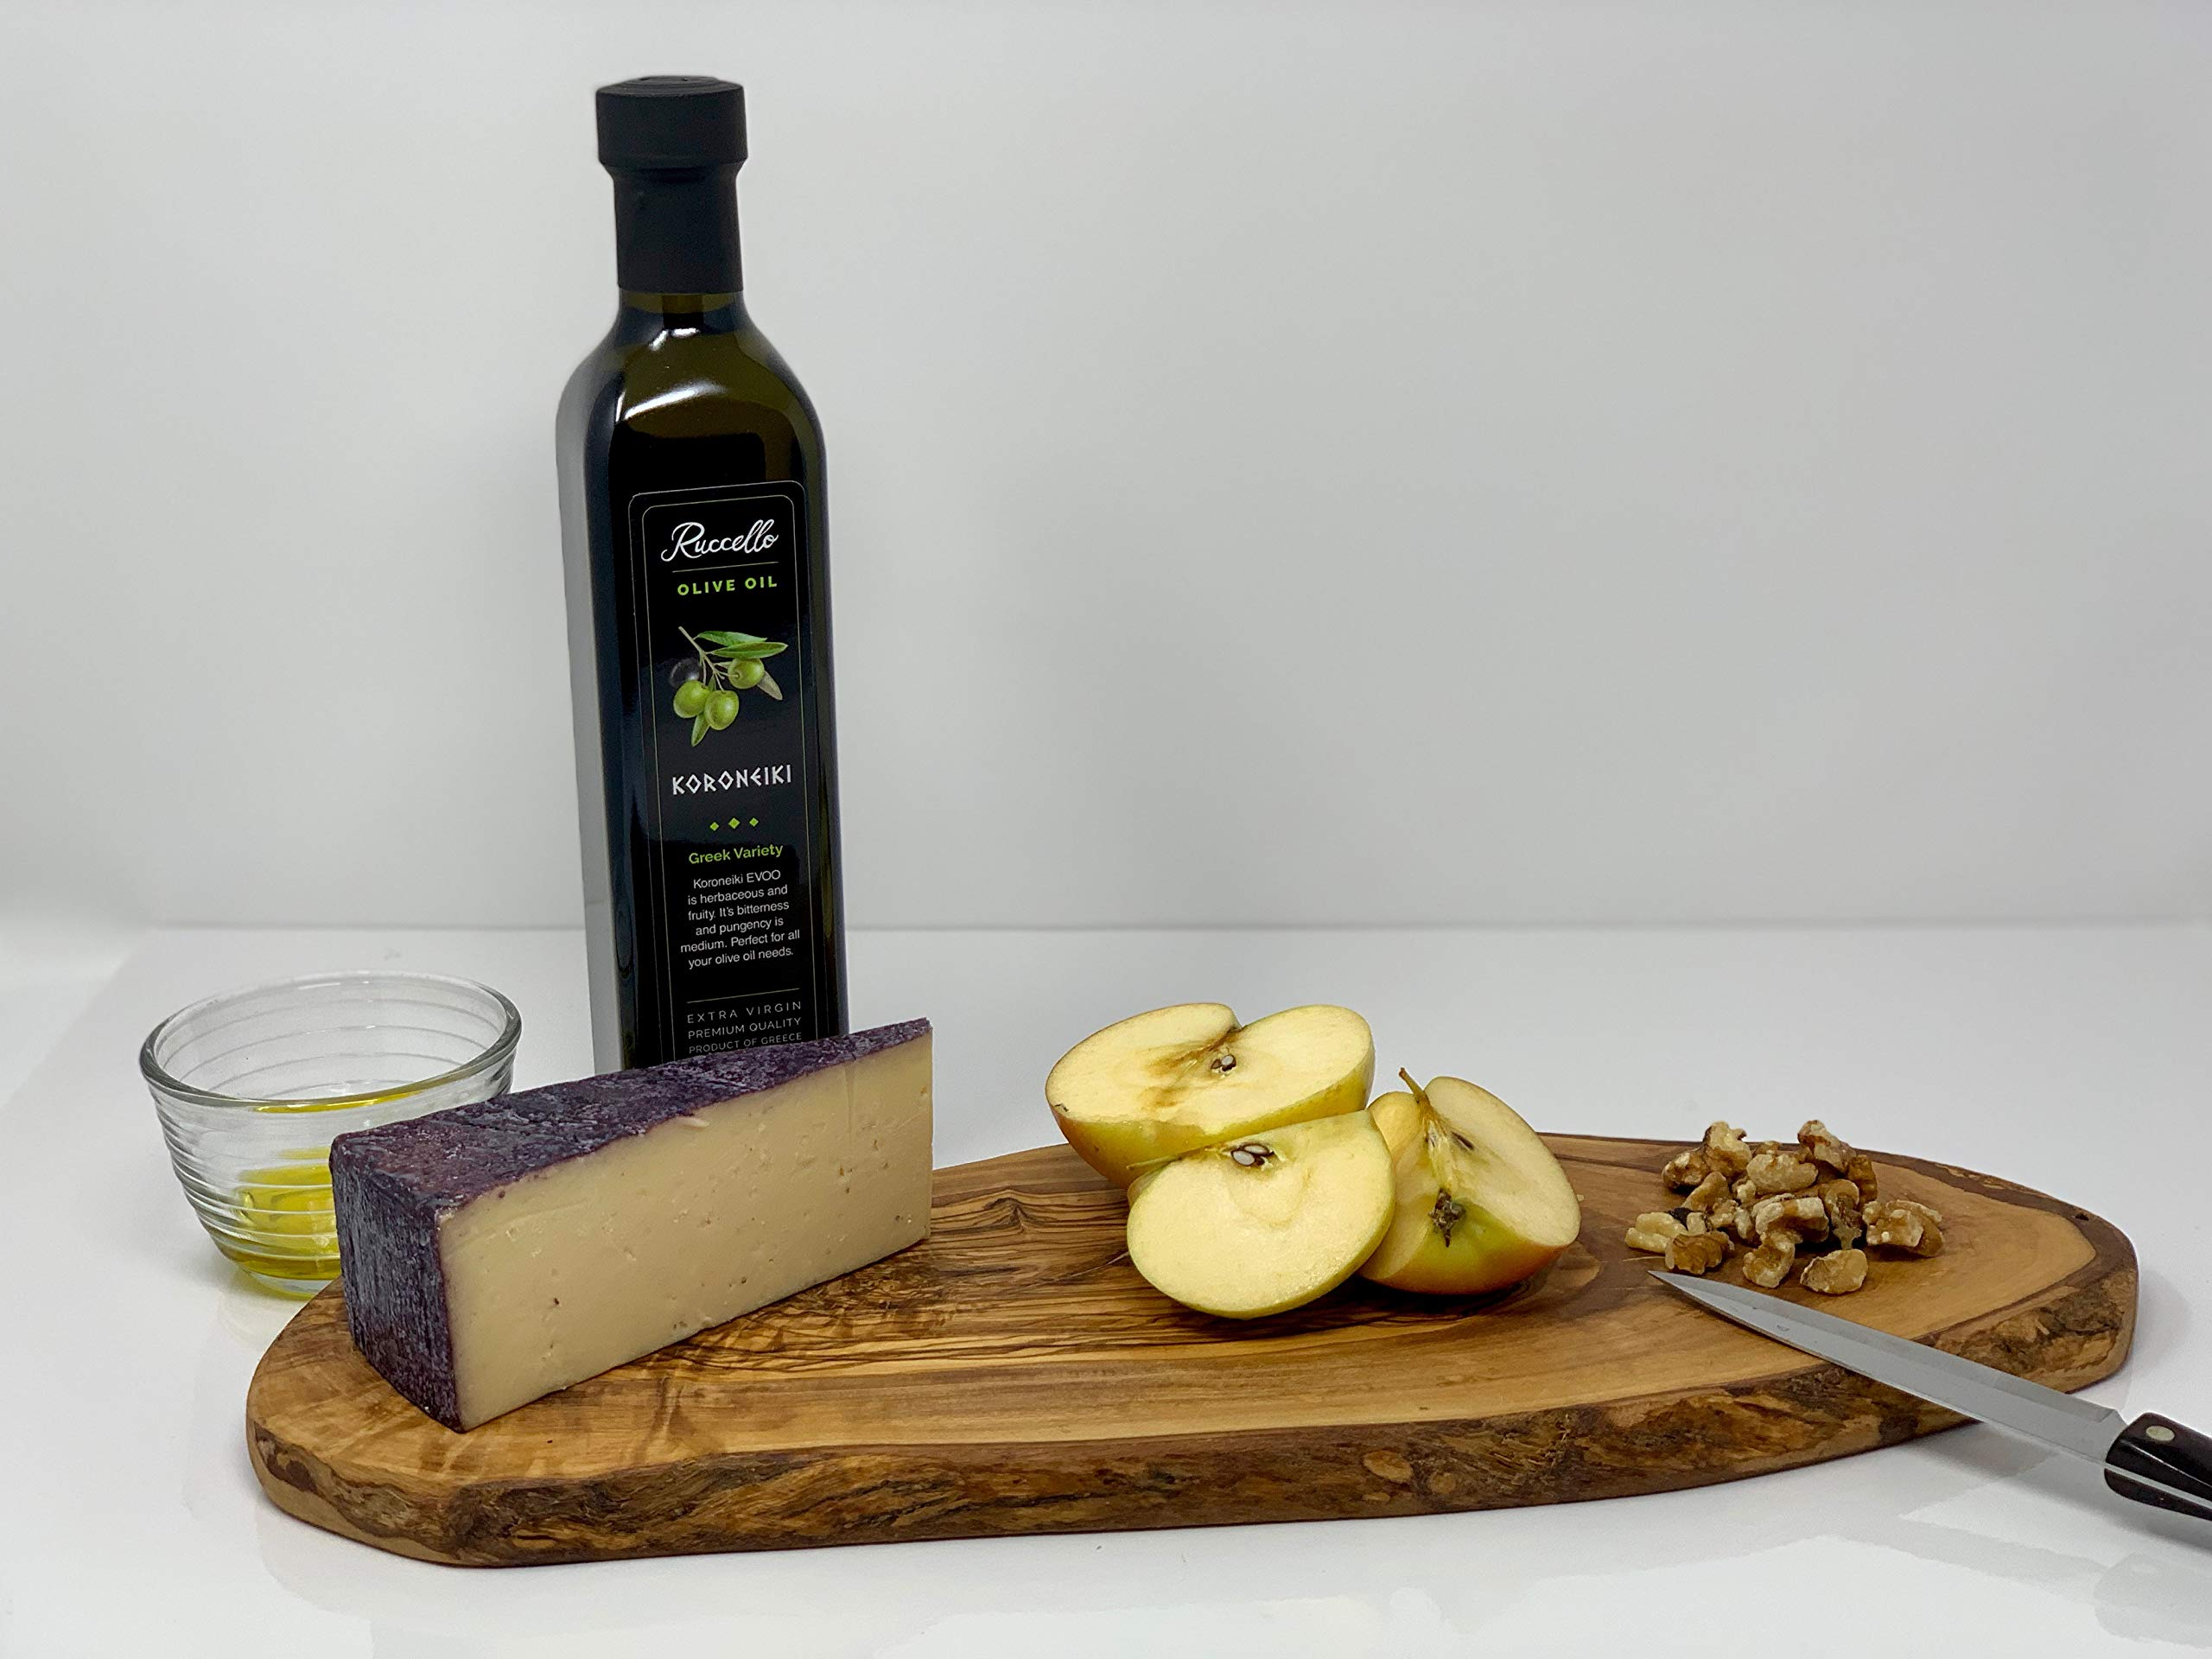 Arte Legno Spello Rustic Hand Made Olive Wood Cutting Board | Small, Medium and Large Cutting Boards Available | Hand Crafted in Italy (small 11-12'' x 5'' x 0.6'') by Arte Legno Spello (Image #6)